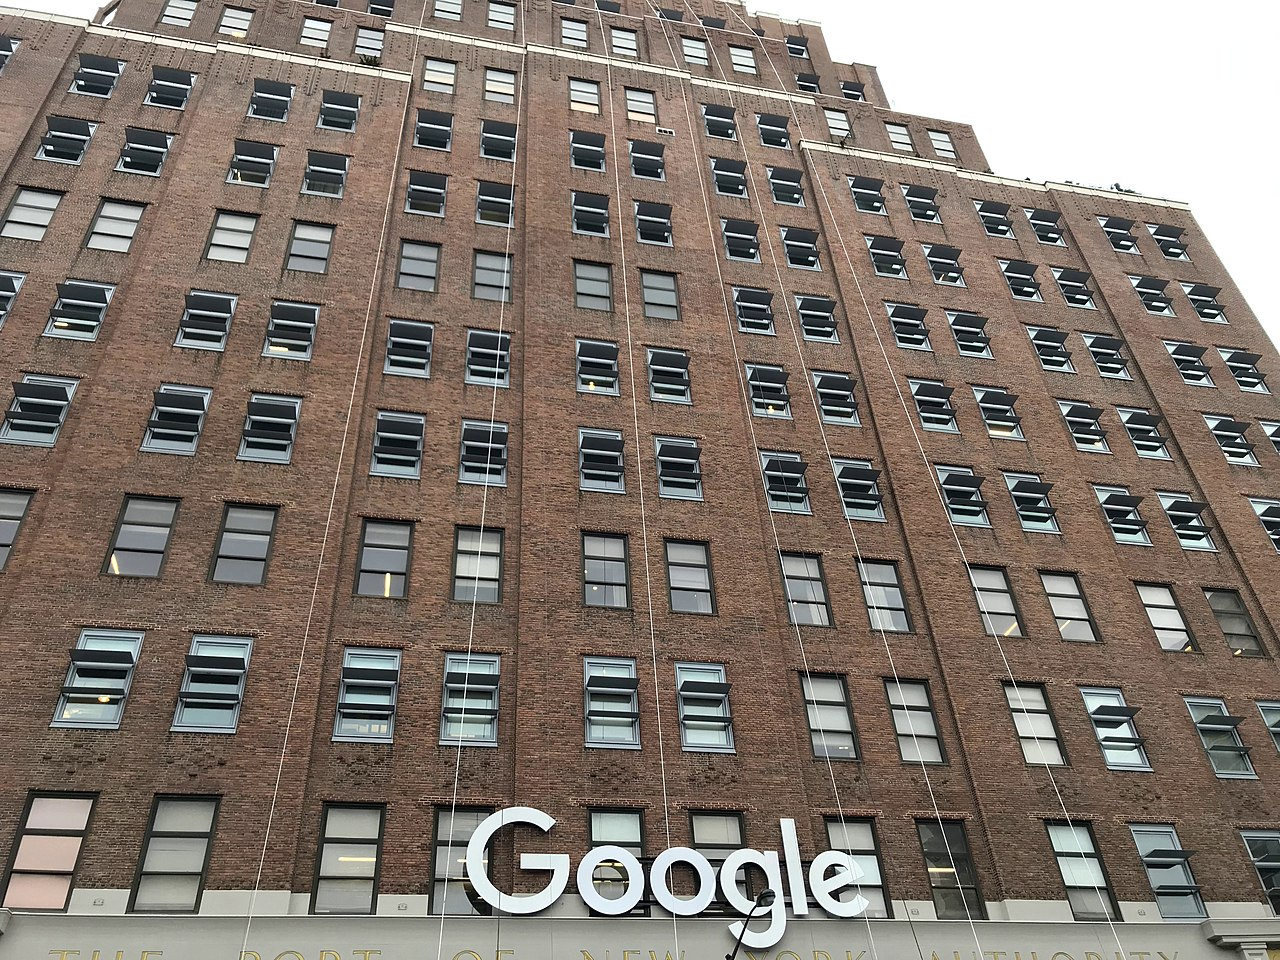 Façade of the Google building, New York City, USA